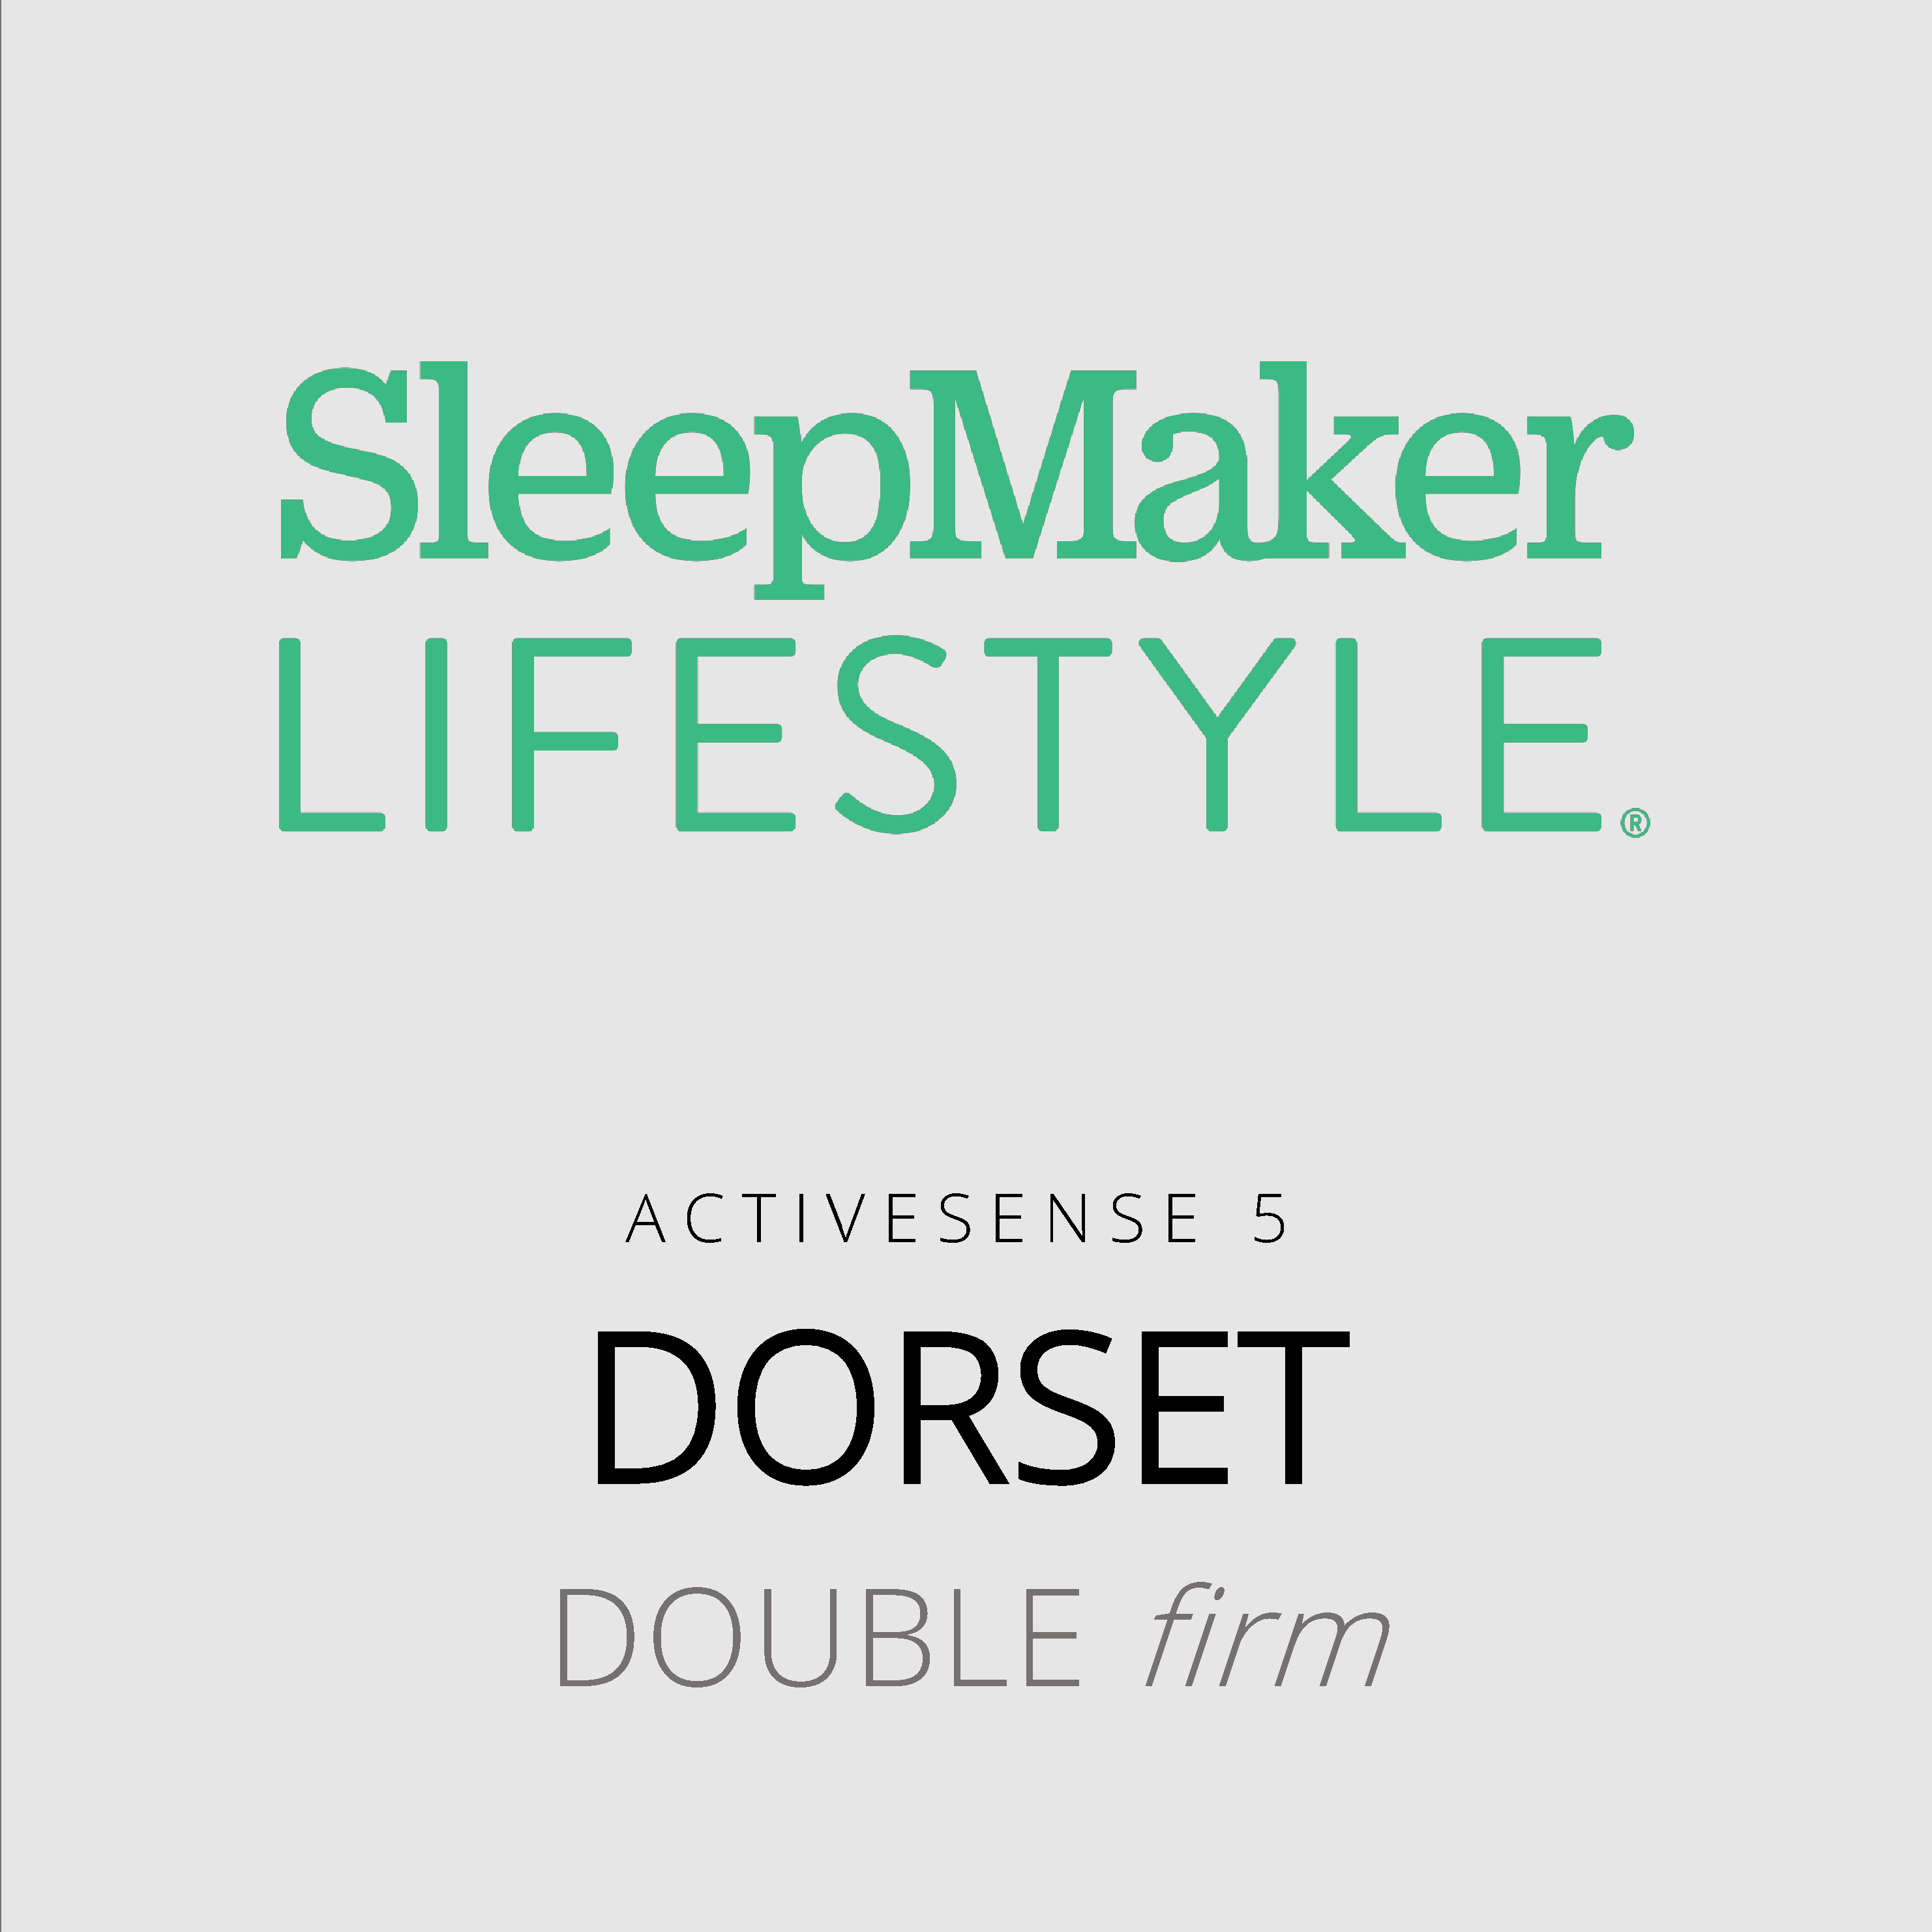 SleepMaker Lifestyle – Dorset – ActiveSense 5 – Double Firm Mattress